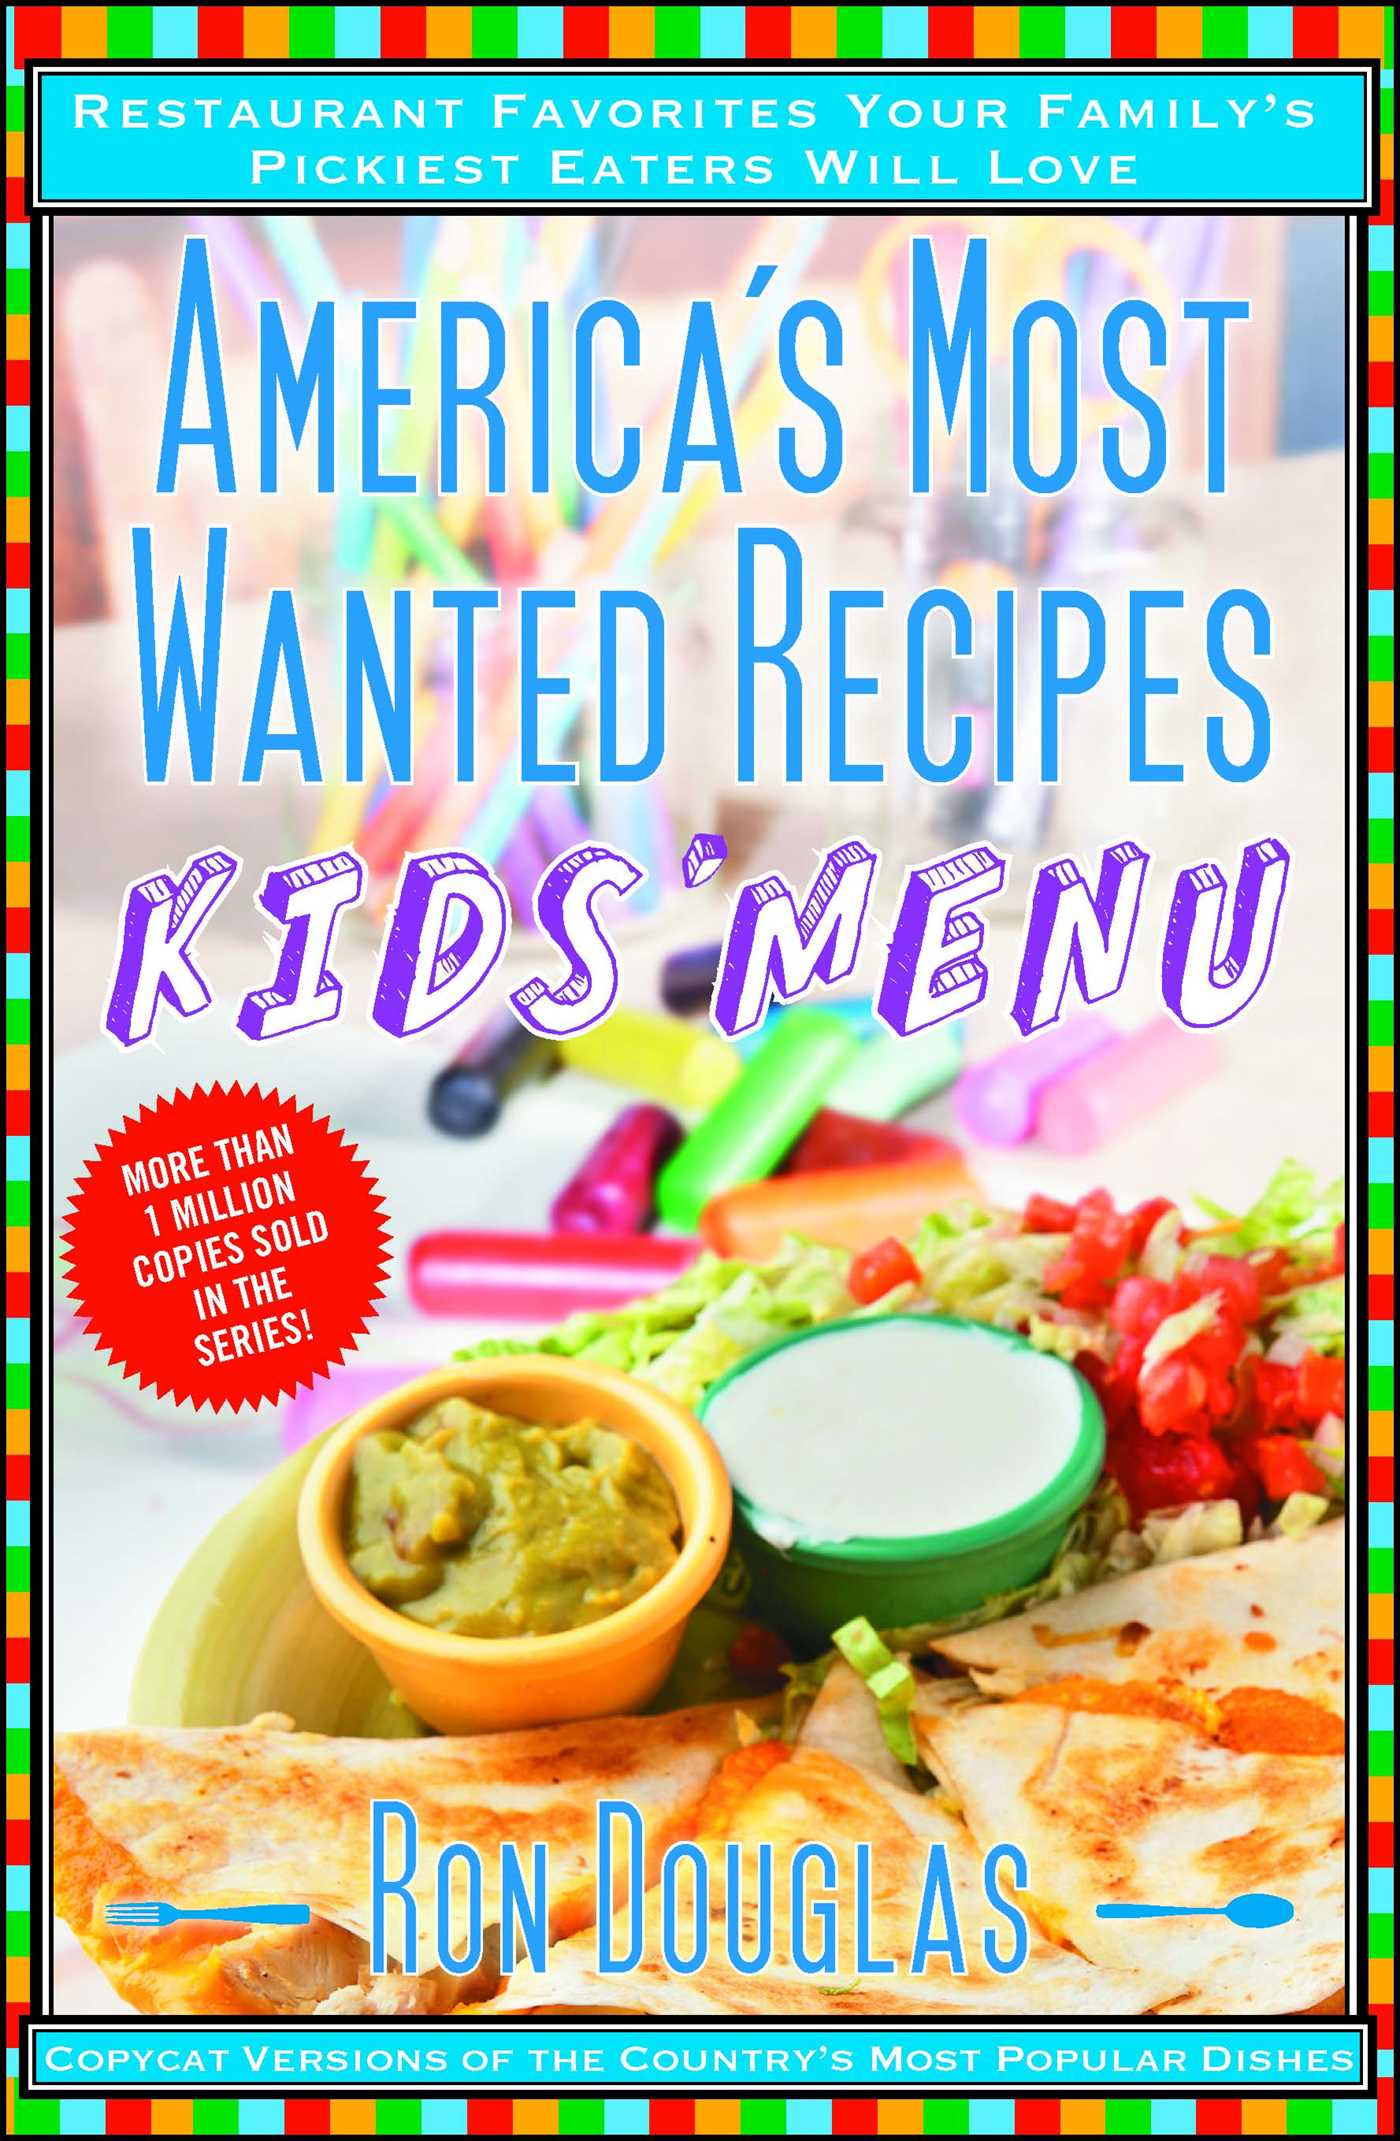 Americas most wanted recipes kids menu 9781476734910 hr